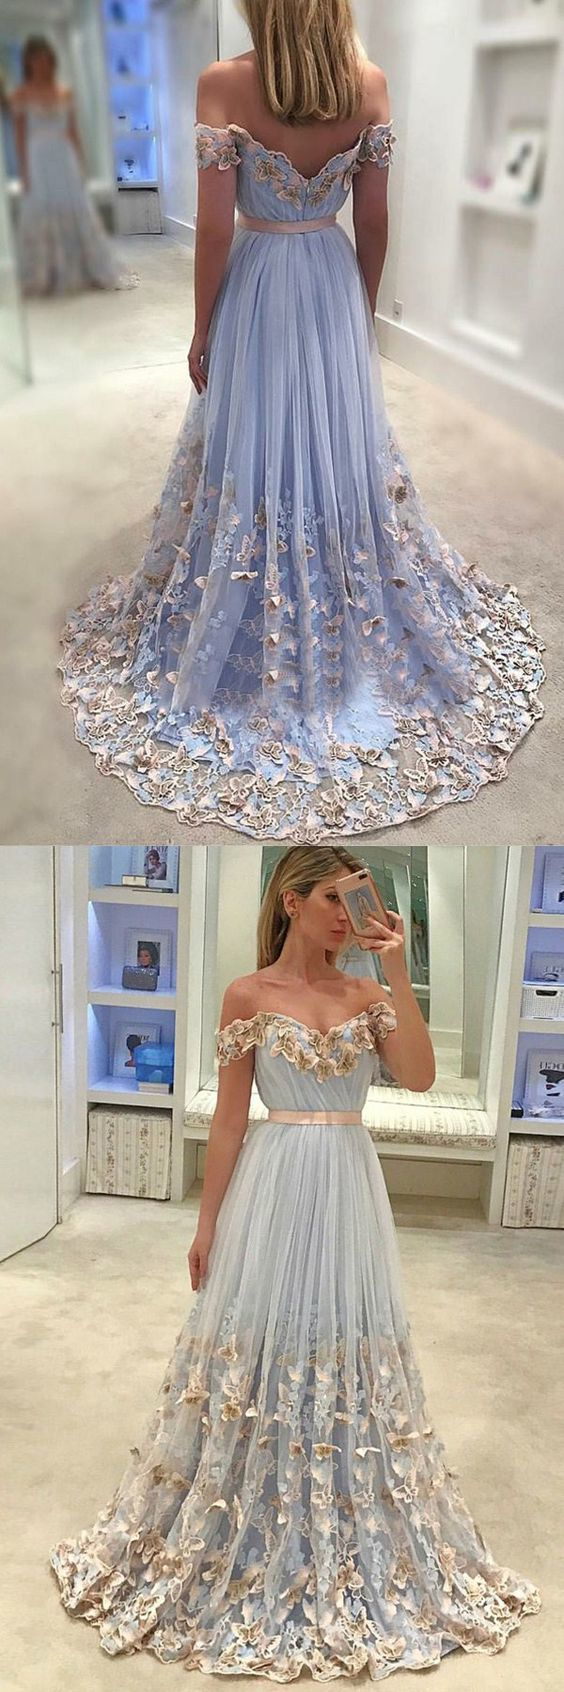 Baby blue prom party dresses with appliques fashion off shoulder